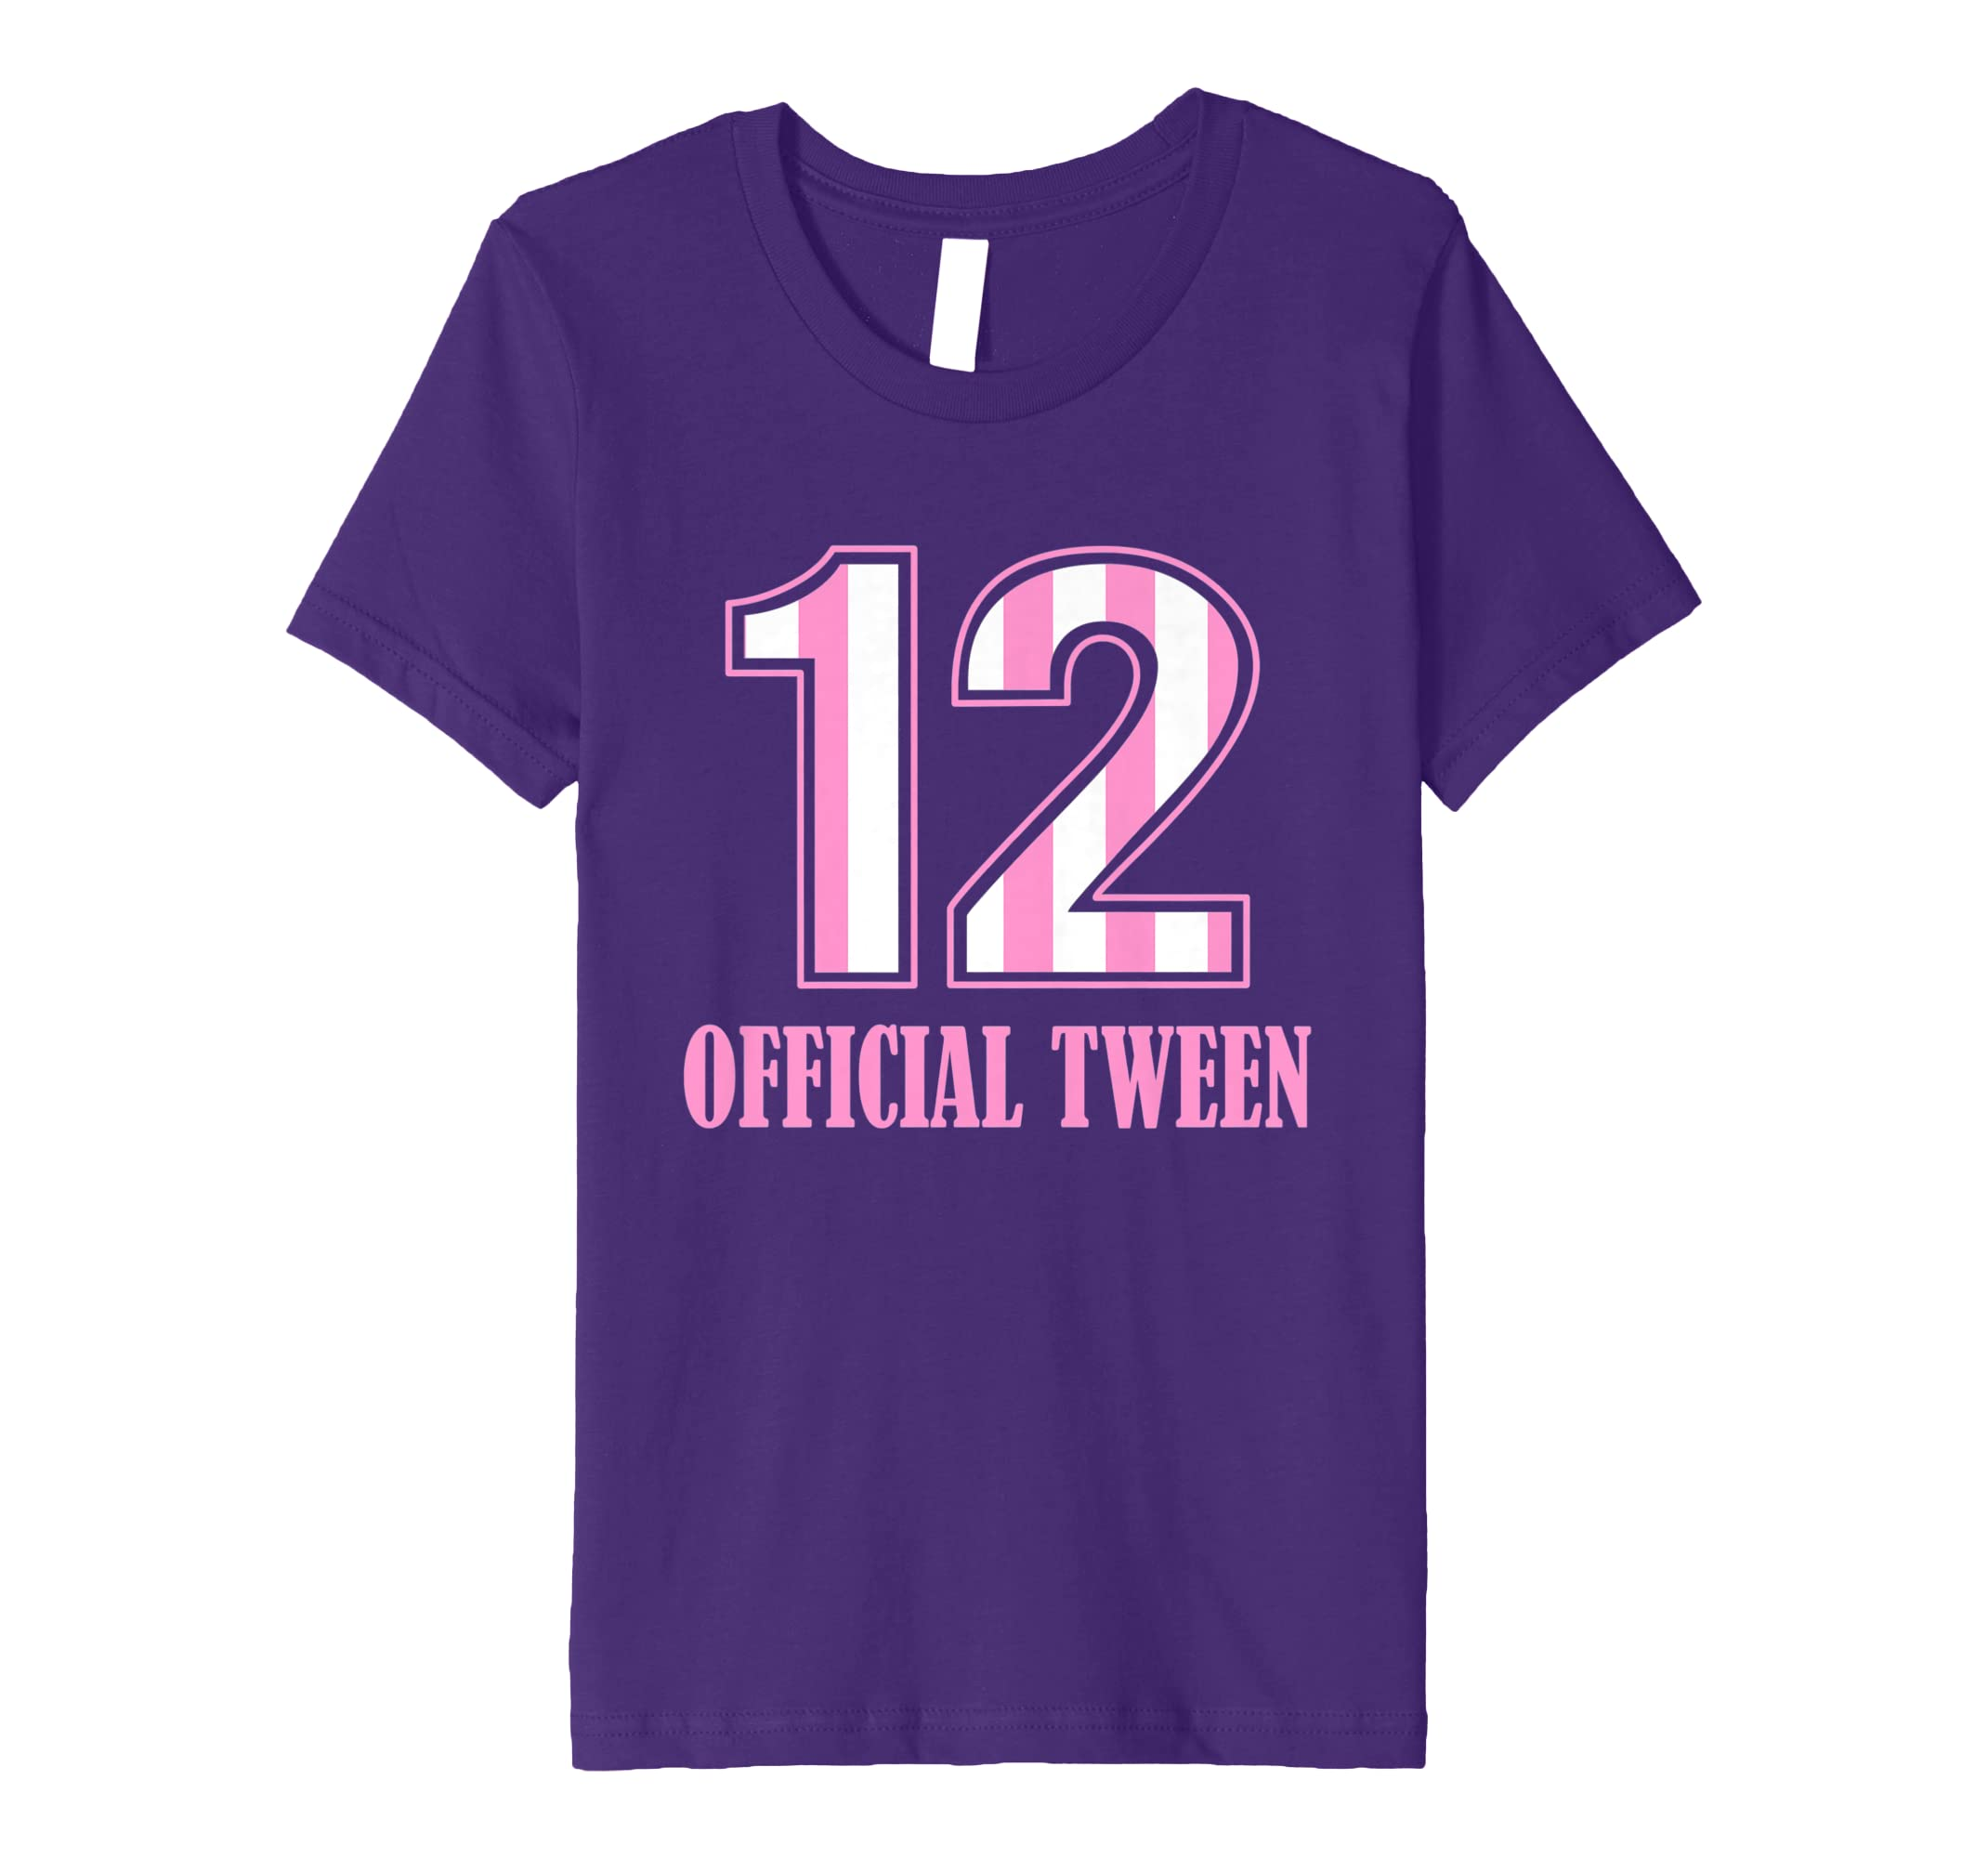 ebe8d927c6c4 Amazon.com  12 Official Tween T-Shirt